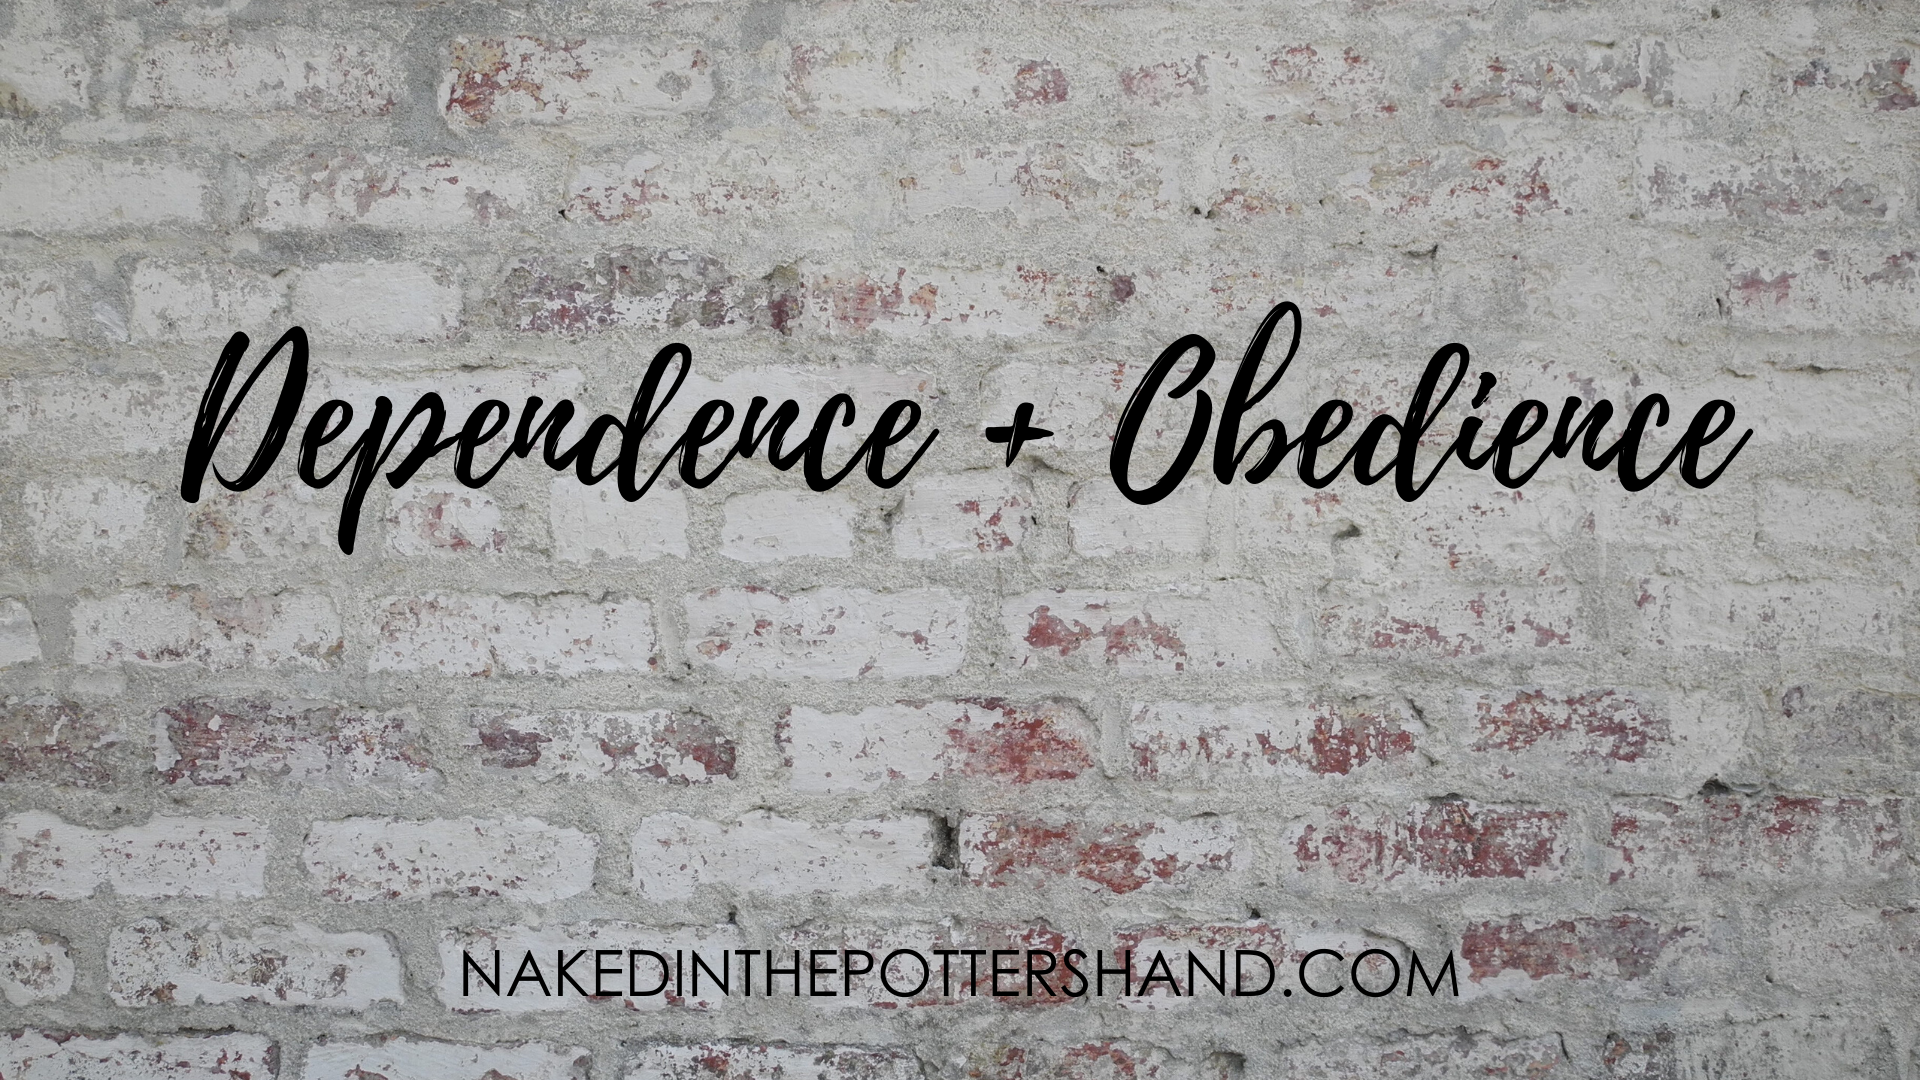 Dependence + Obedience